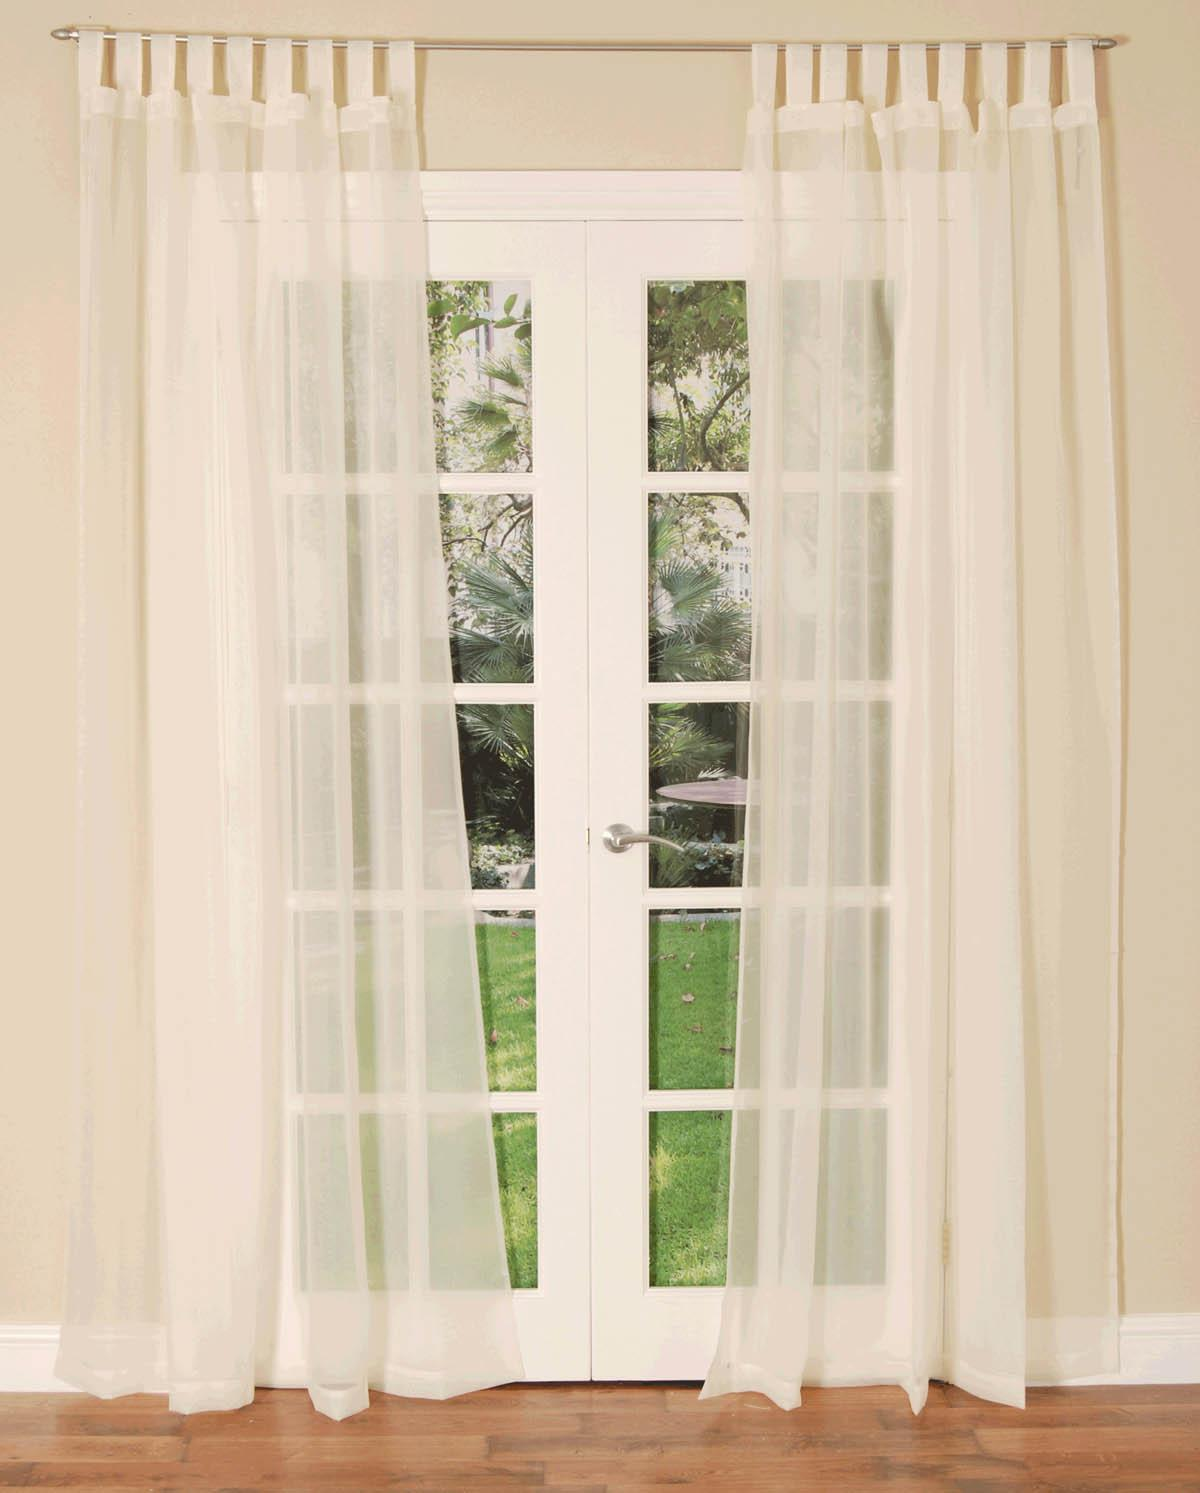 How to make tab top curtains - Tab Top Voile Single Curtain Panel